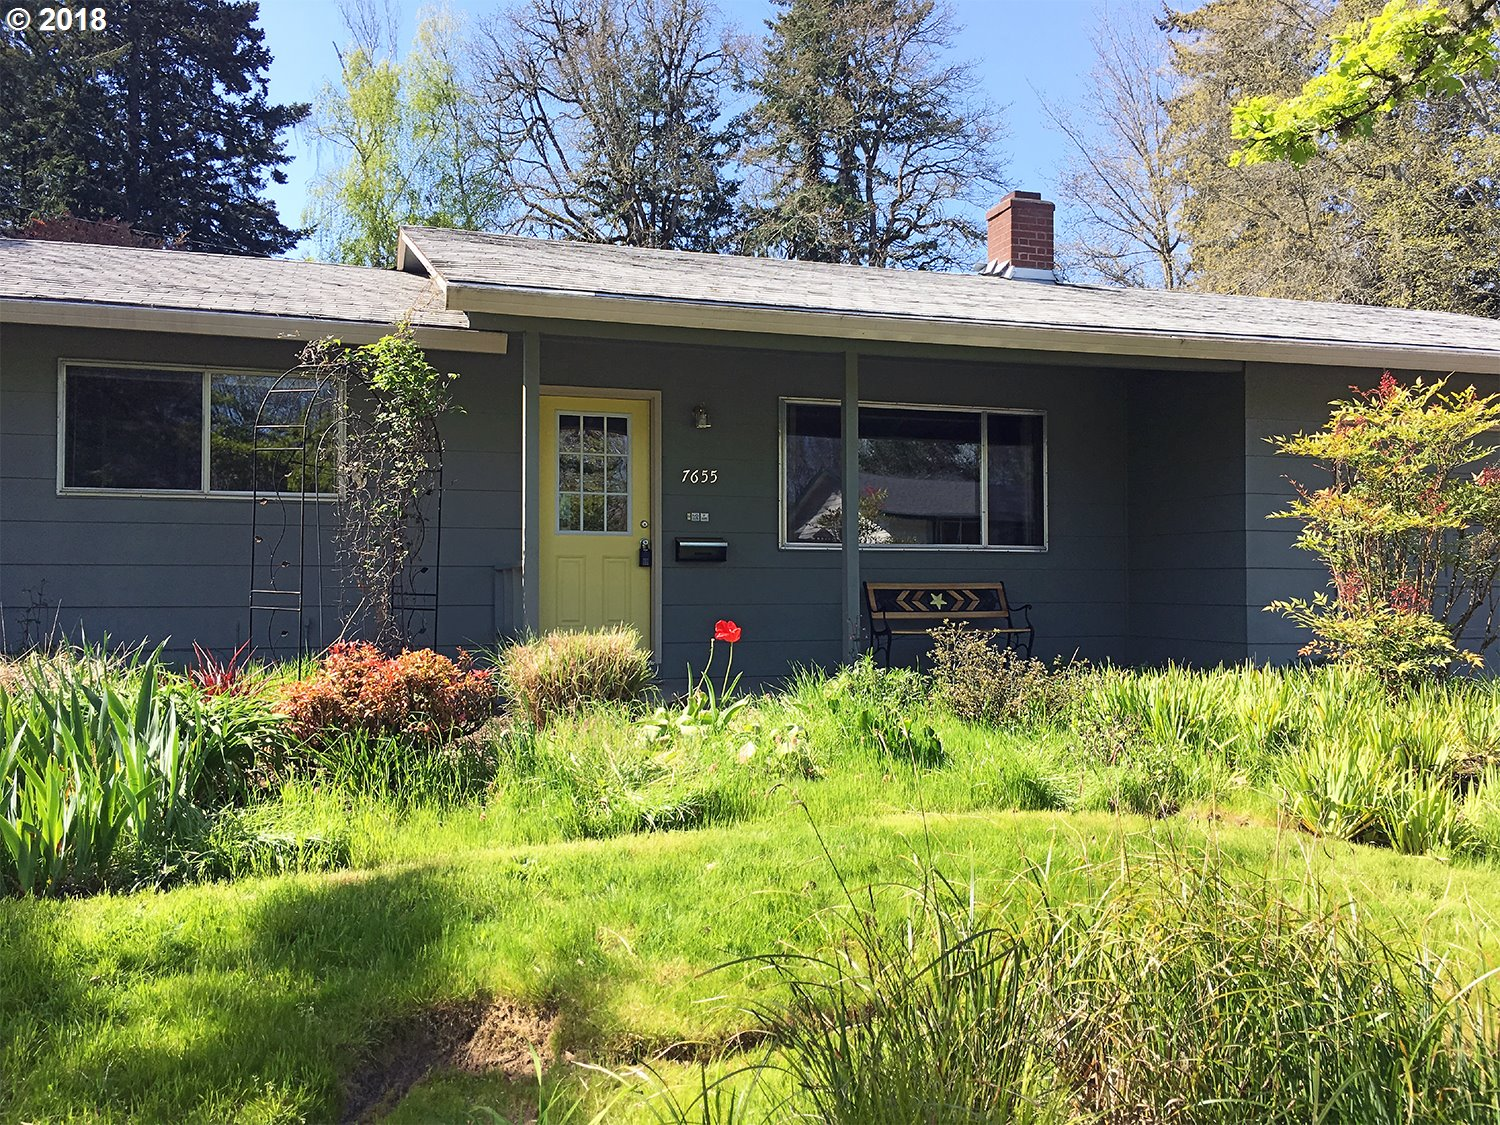 Awesome location! Just half block to the Fanno Creek Trail w/miles & miles of trails-Walk to restaurants-cafes-shops-grocery & grade school. Perfect starter home, mid century classic w/open floor plan-very light & bright with big  windows, hardwood floors, fireplace, large kitchen, huge dble master. Brand new Vose school is STEAM-Science-Technology-engineering & math. Large lot w/perennial garden. Close to everything. Walk to WES train